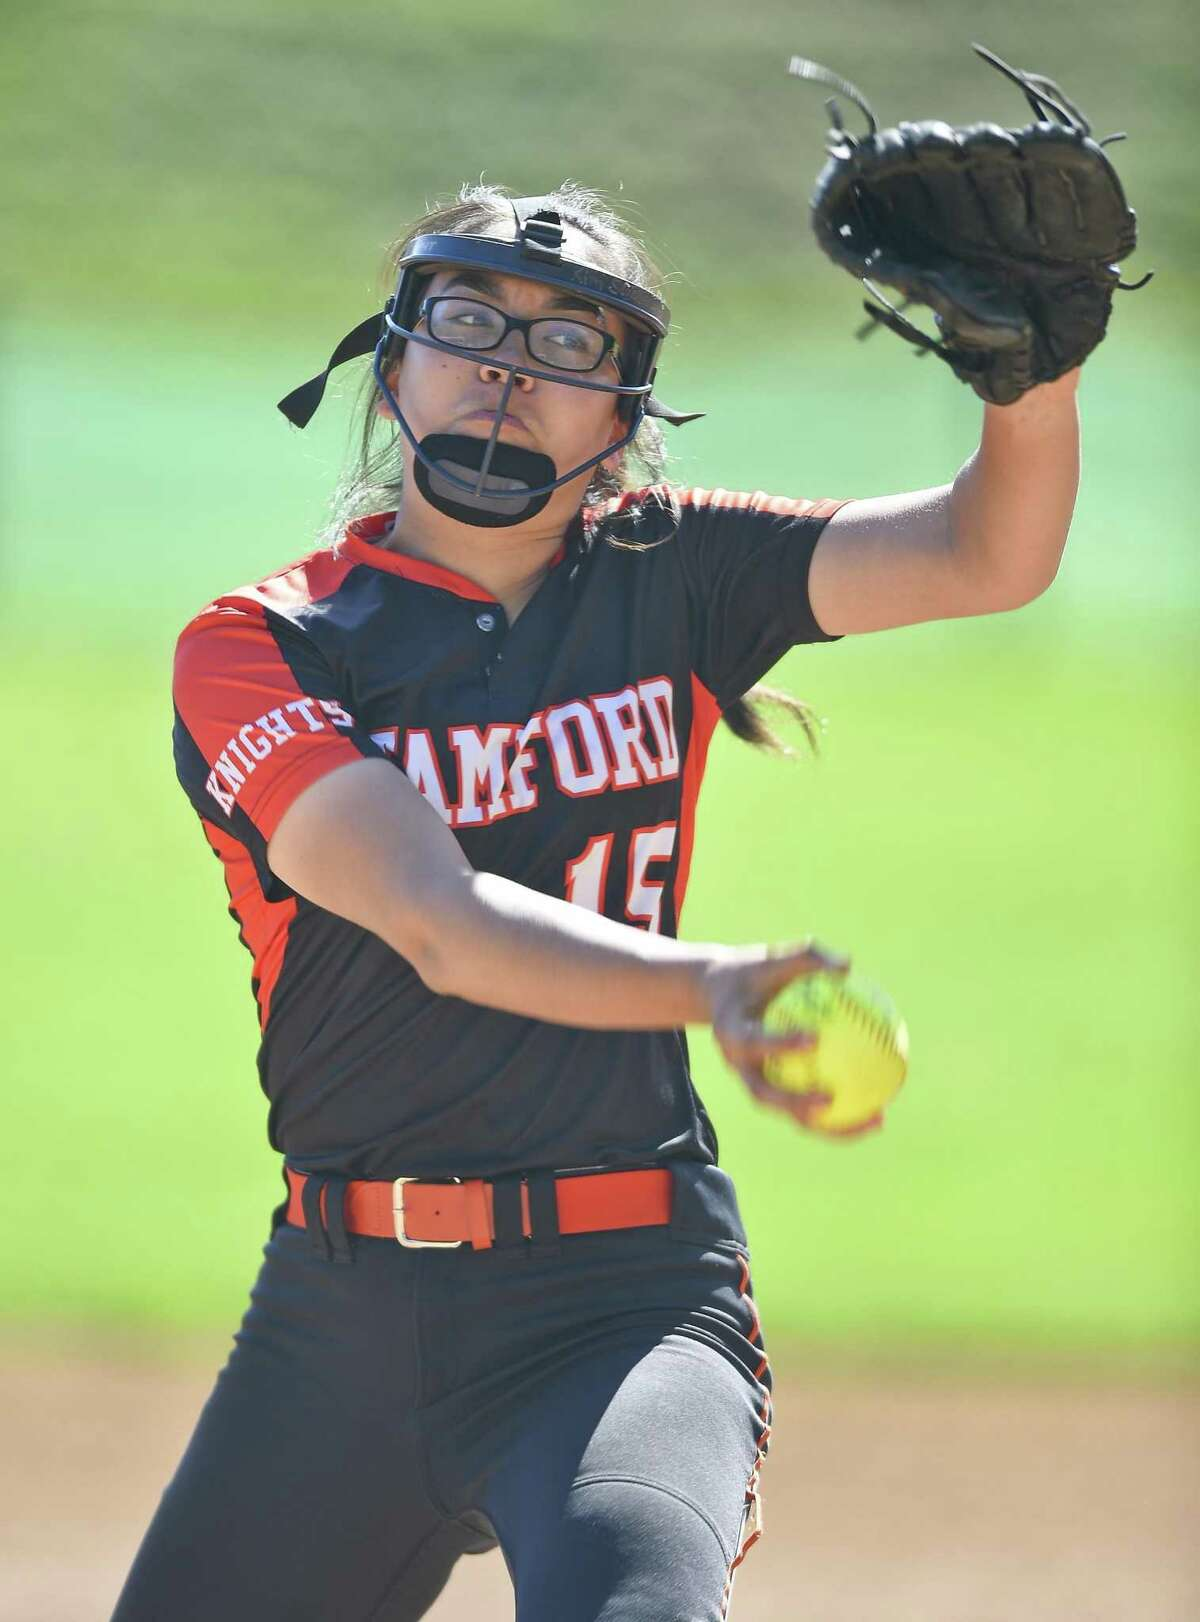 Stamford pitcher Kim Saunders (15) makes her delivery in the first inning against Westhill in a girls softball game at Westhill High School on May 8, 2019 in Stamford, Connecticut. Stamford defeated Westhill 6-4 in eight innings.